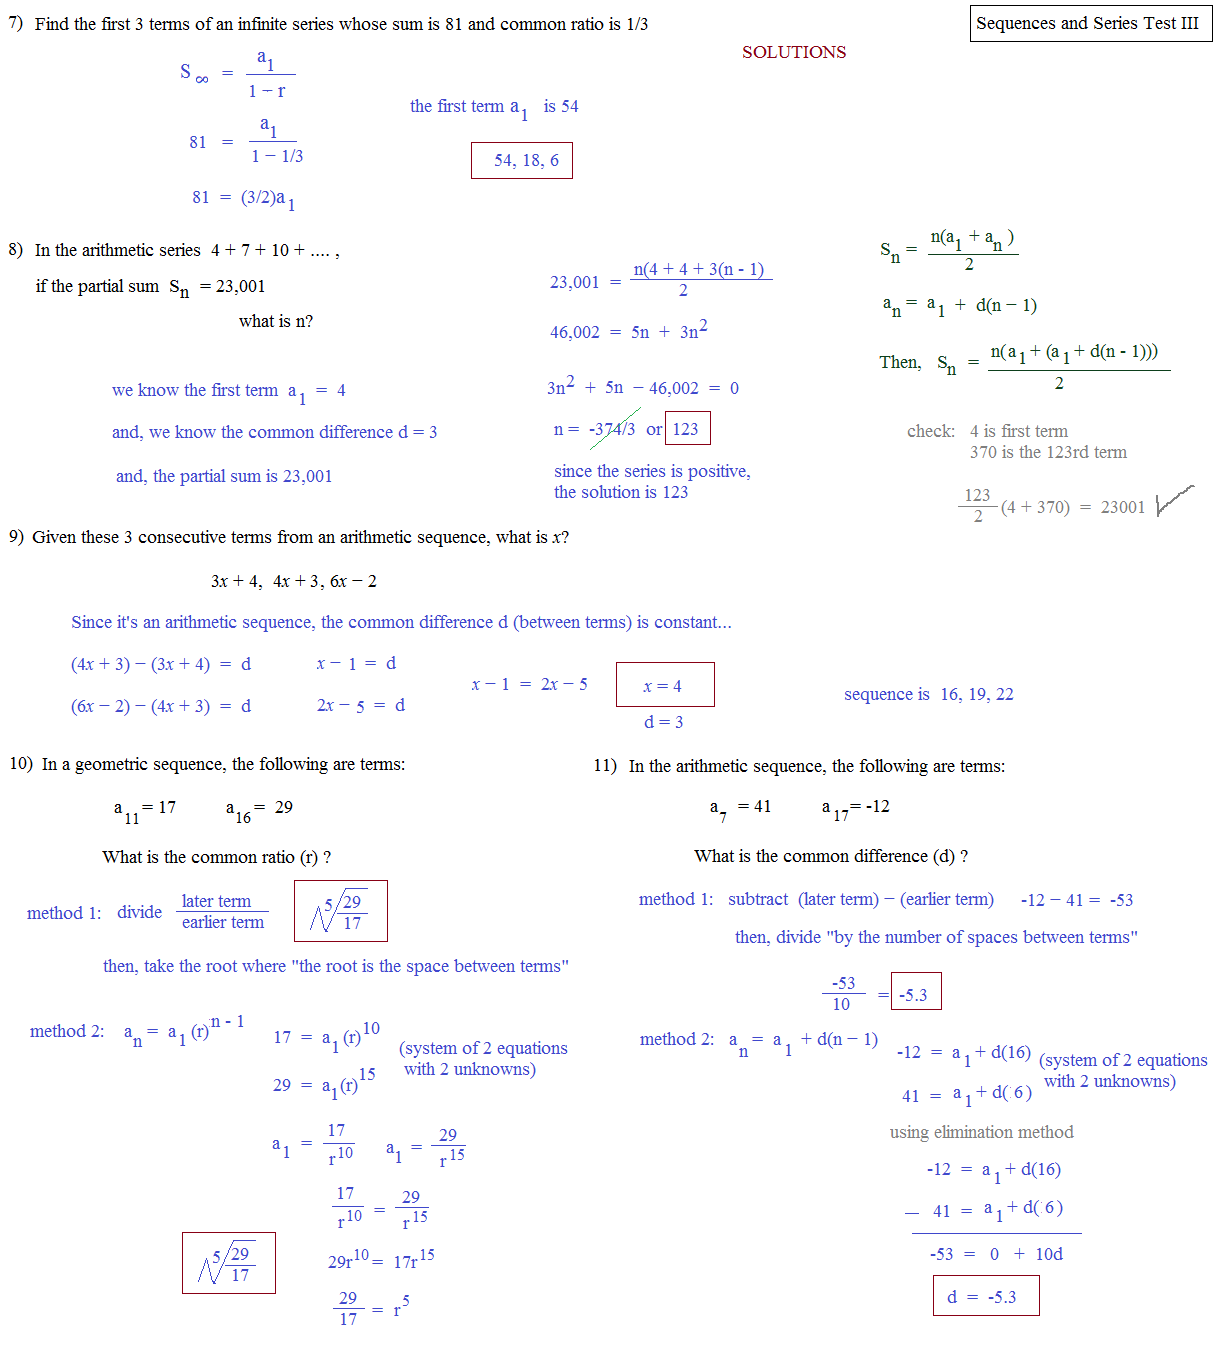 Pre Calculus Sequence and Series Review Worksheet by Cindy Carlson likewise Alge 2  plex Numbers Review Worksheet Lovely Arithmetic and besides high math review worksheets – nuripyramids info likewise Arithmetic Sequence Worksheet Pdf   Briefencounters together with Intro to arithmetic sequences   Alge  video    Khan Academy as well Recursive Sequence Worksheets further Geometry Review Worksheets High The Best Image Collection New furthermore Geometric sequence review  video    Series   Khan Academy as well  besides Alge Review Worksheets Worksheet Template Printable Free 1 as well Sequences and Series Scenarios together with Sequences and Series  part 1    YouTube further Unit 8 ignments Worksheets Review Sheet in addition Unit 7   8  Sequences  Series  and Financial Applications   D likewise Sequences And Series Scenarios   FREE Printable Worksheets additionally Carlos Lomas Worksheet For Everyone Page 281. on sequences and series review worksheet